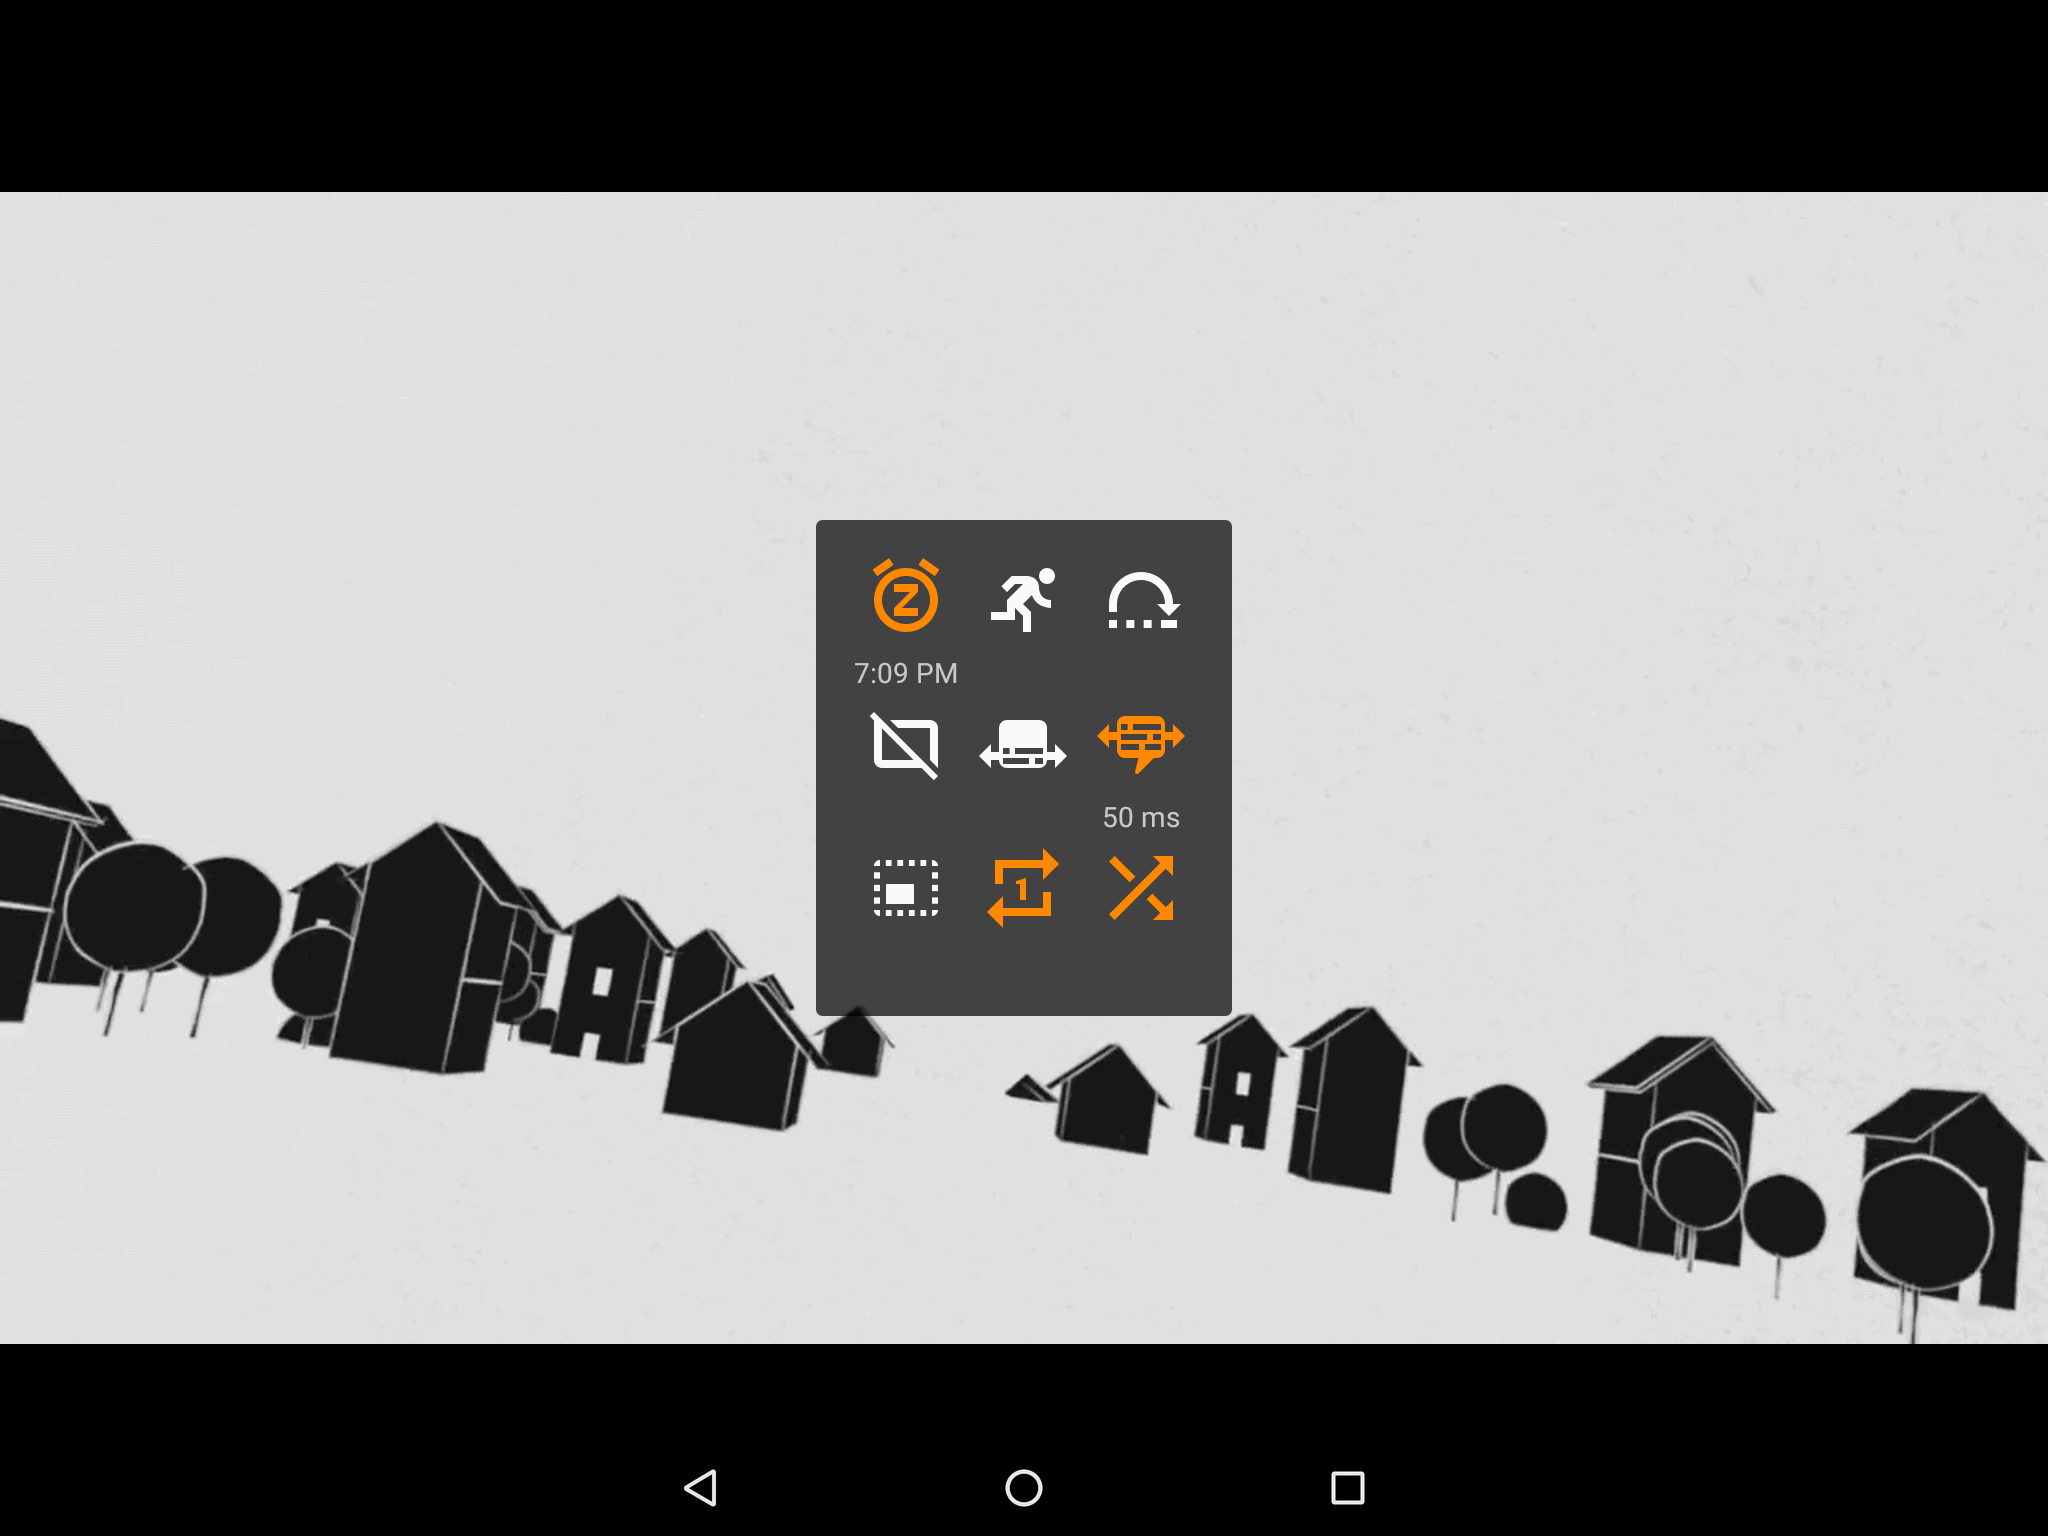 VLC Android 20 Update 8